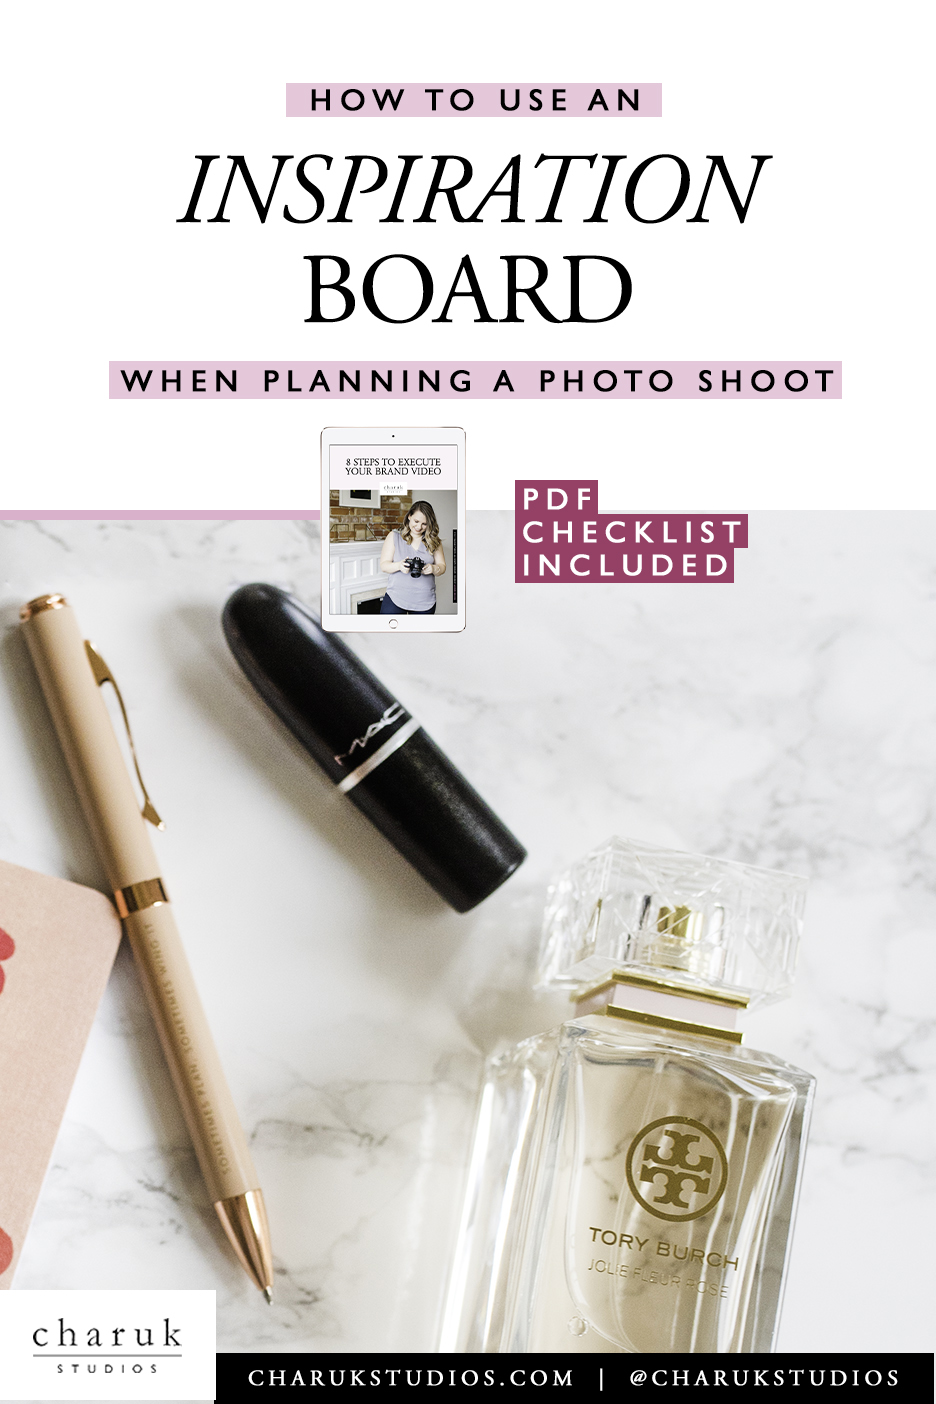 How to use an inspiration board when planning a photo shoot by Charuk Studios